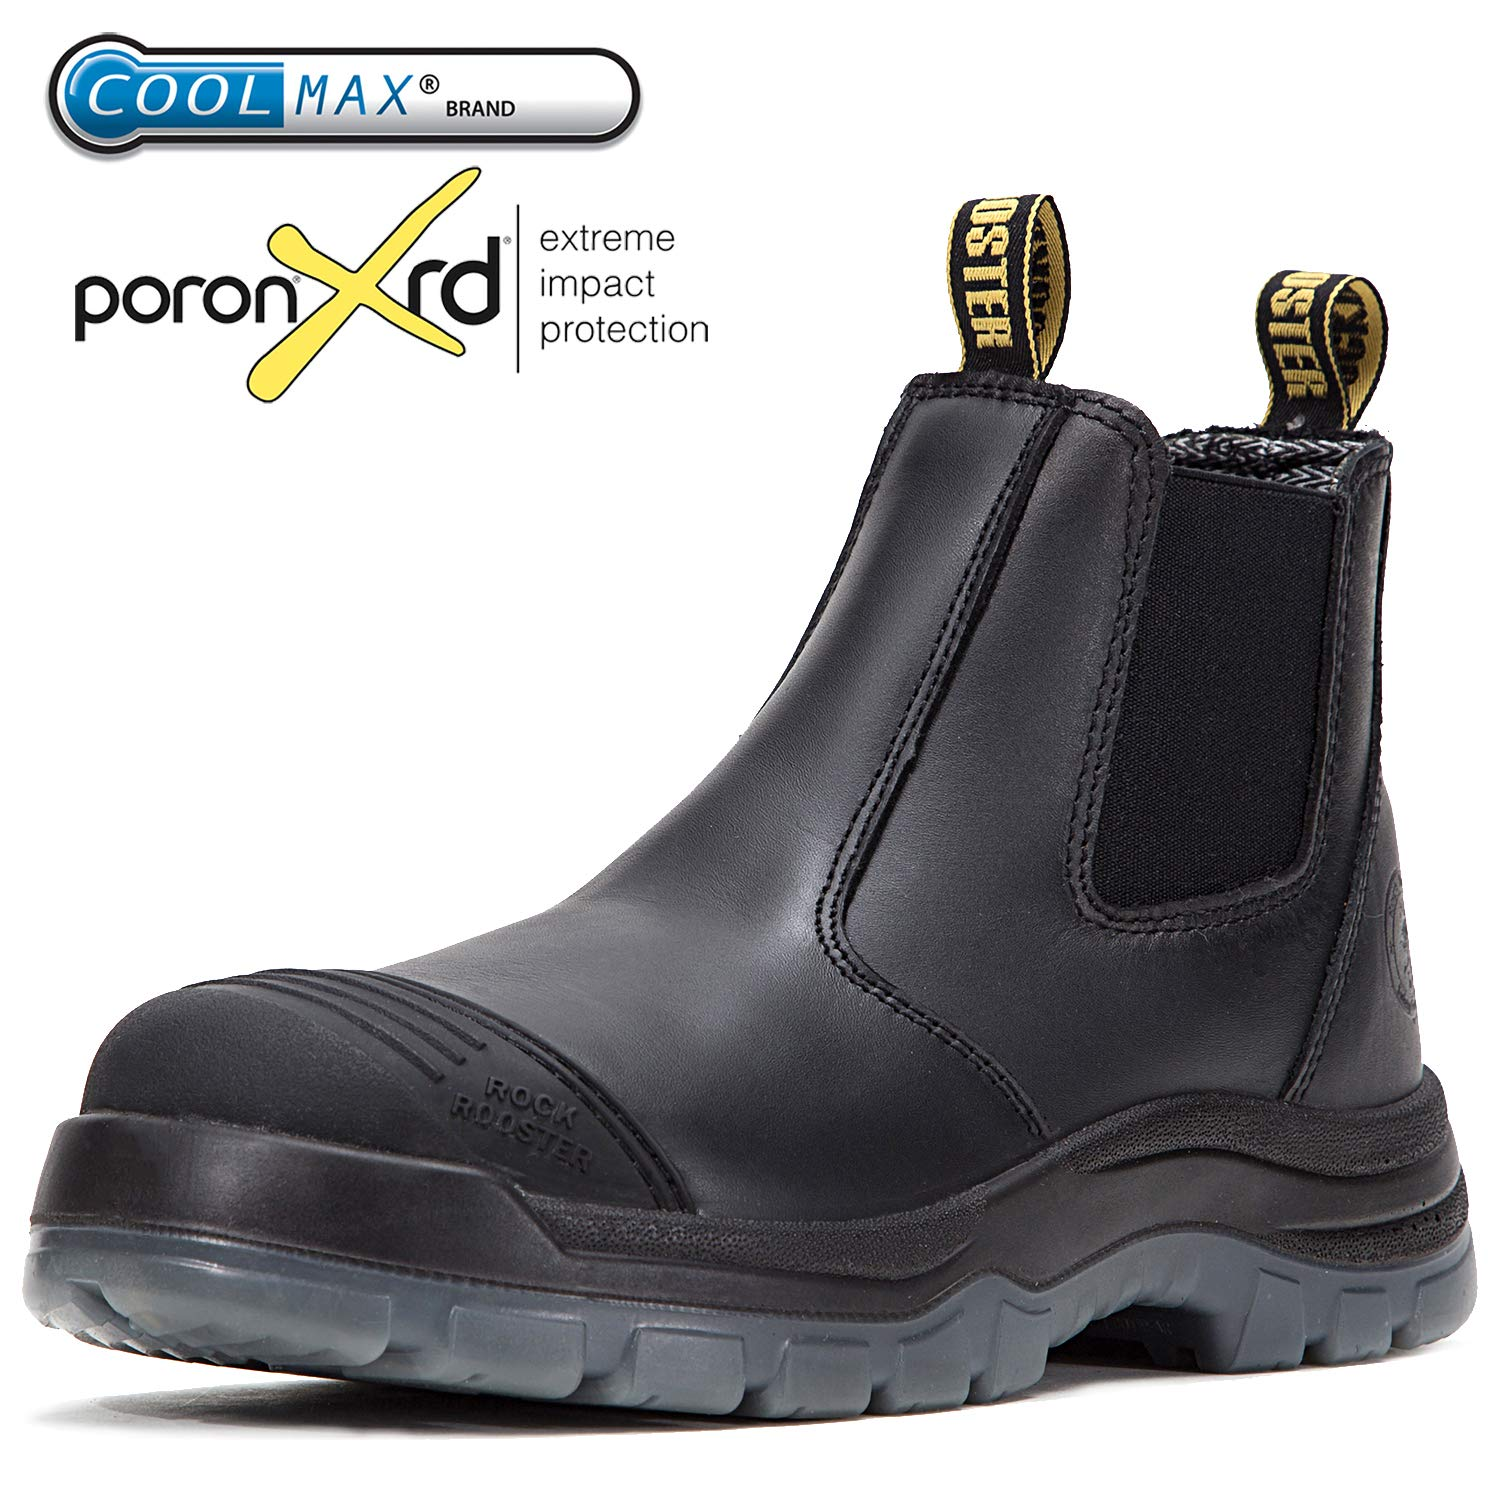 ROCKROOSTER Men's Work Boots Waterproof, Steel Toe, Water Resistant Leather Shoes, AK227, AK222 Hangzhou Zhangshitonghe Shoes Co. ltd